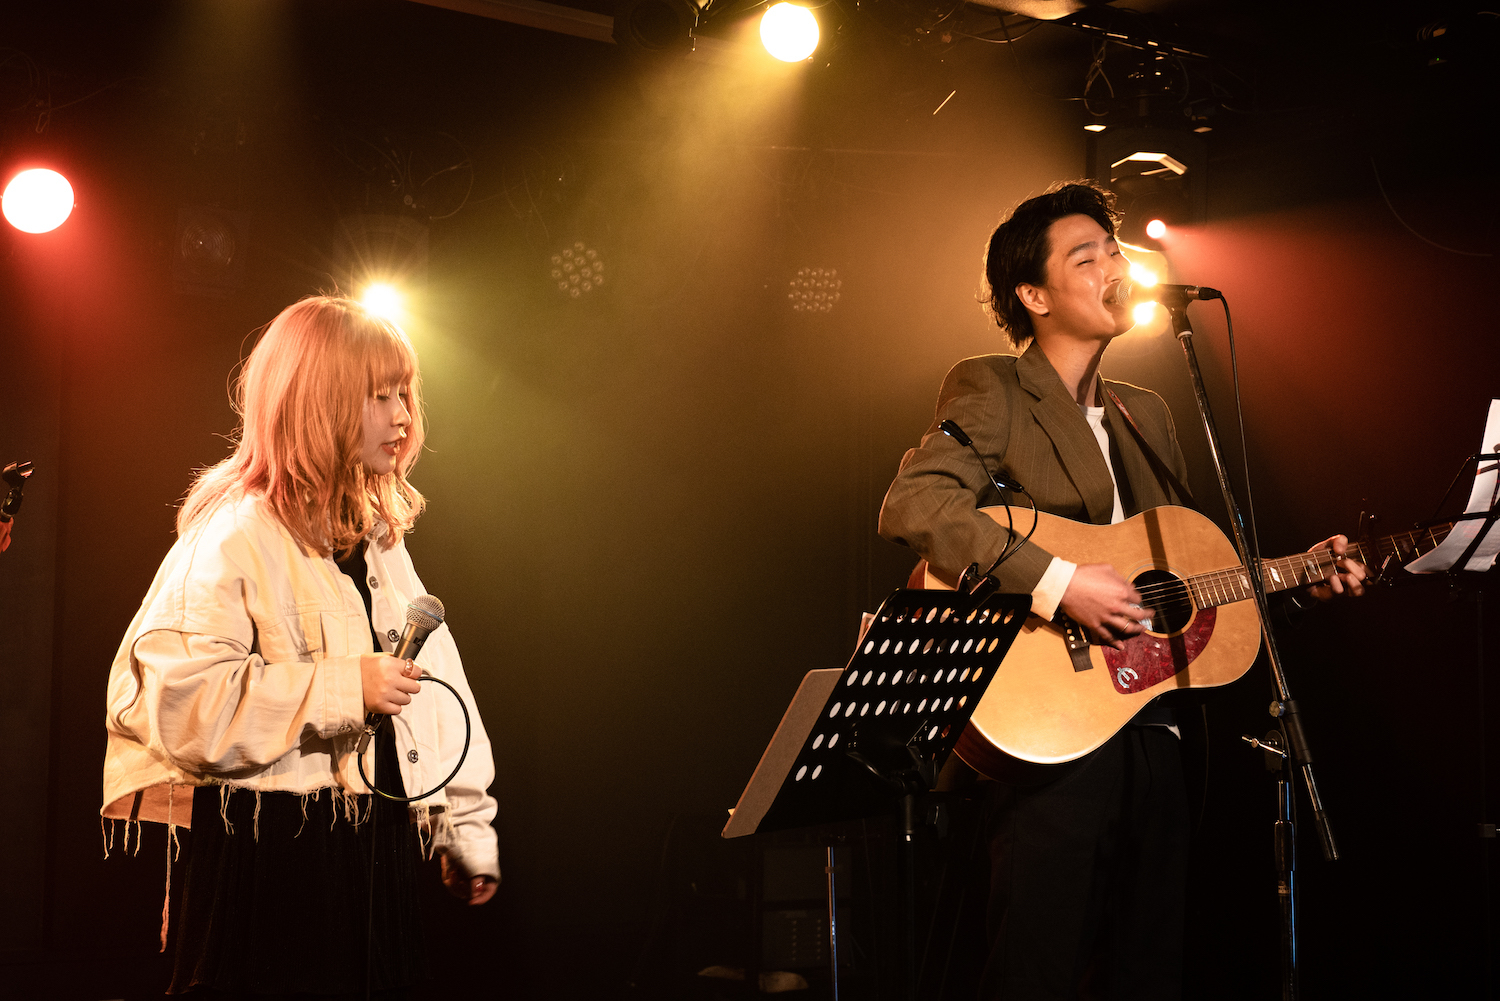 『HEY! LOOK AT ME NOW! vol.4』